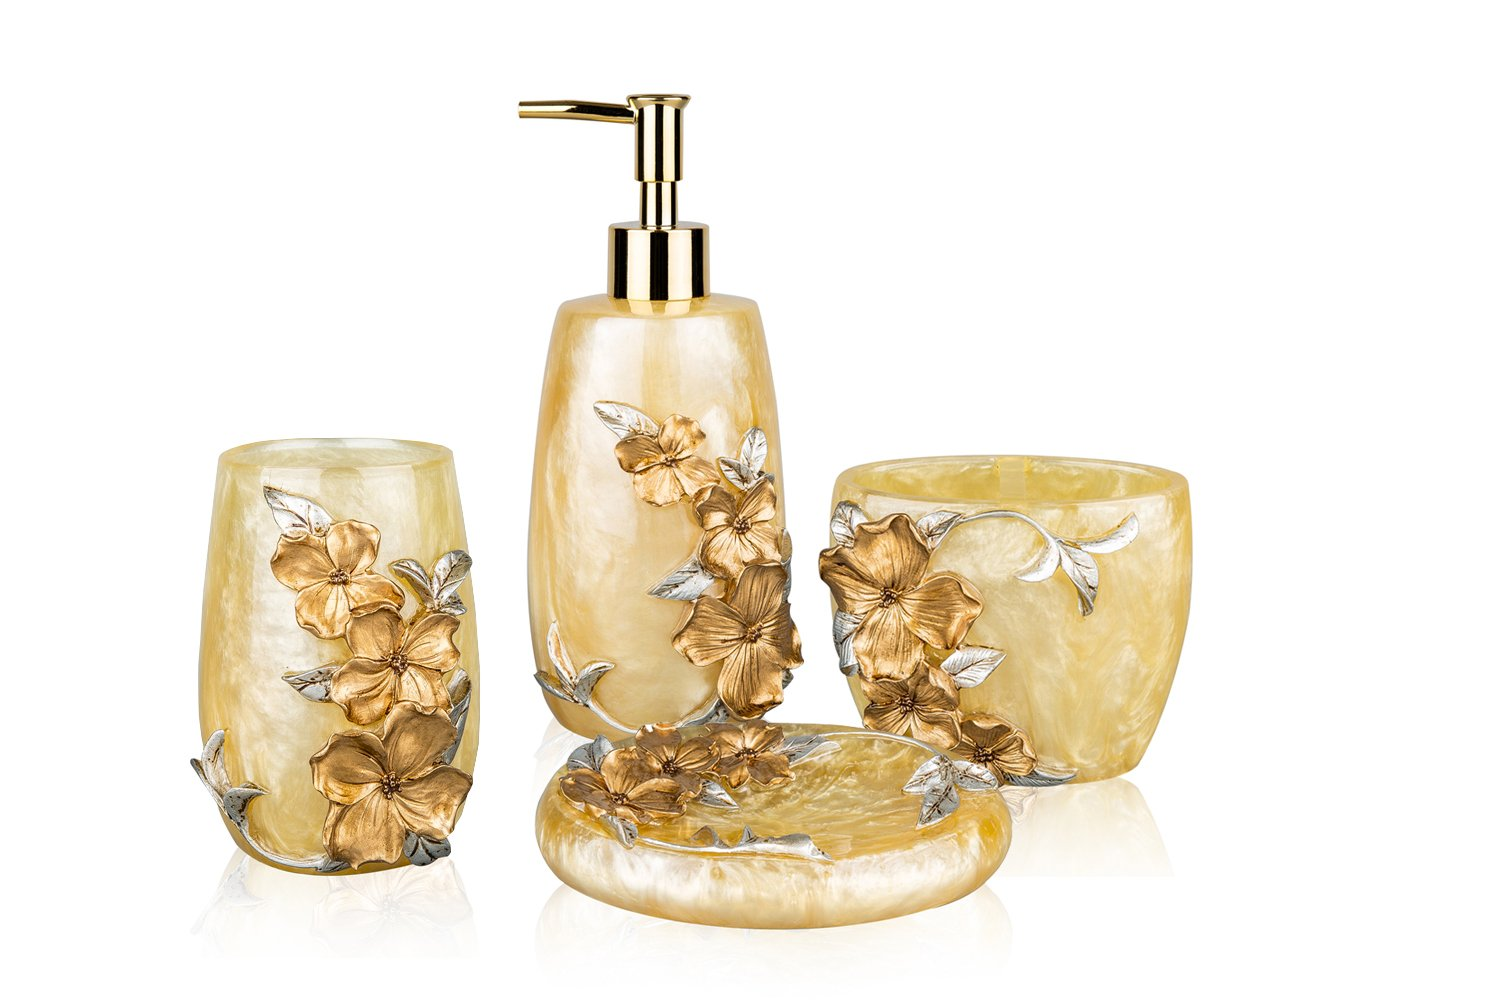 SILOKO 4 Piece Bathroom Accessory Set 3D Silver&Gold Floral with Soap Dispencer,Toothbrush Holder,Tumbler and Soap Dish 132-Bath001